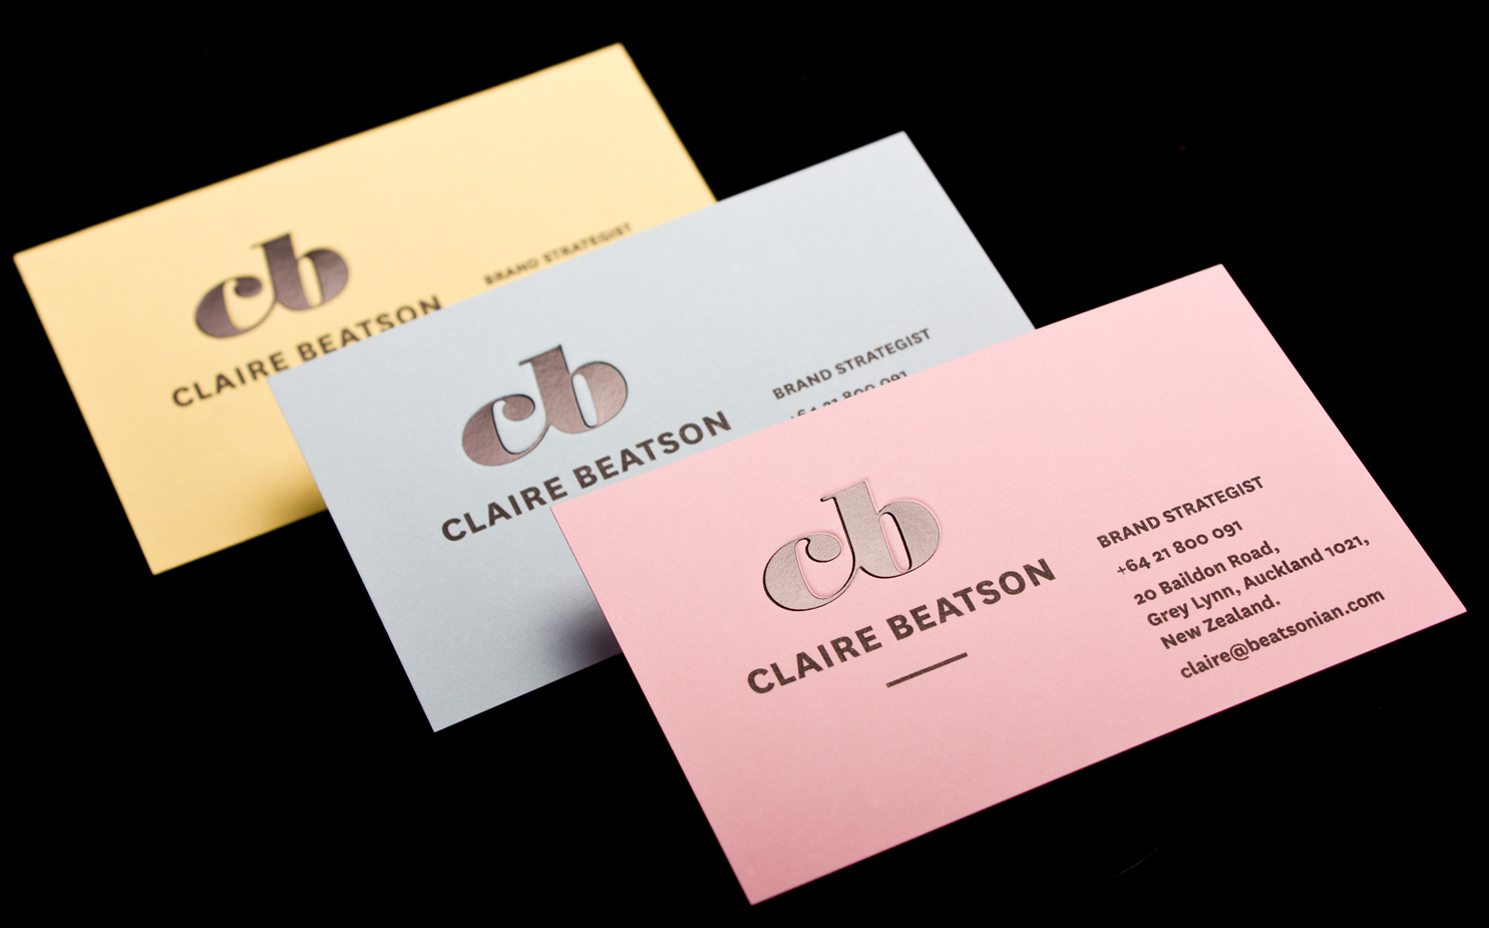 Claire beatson business cards logick print reheart Image collections